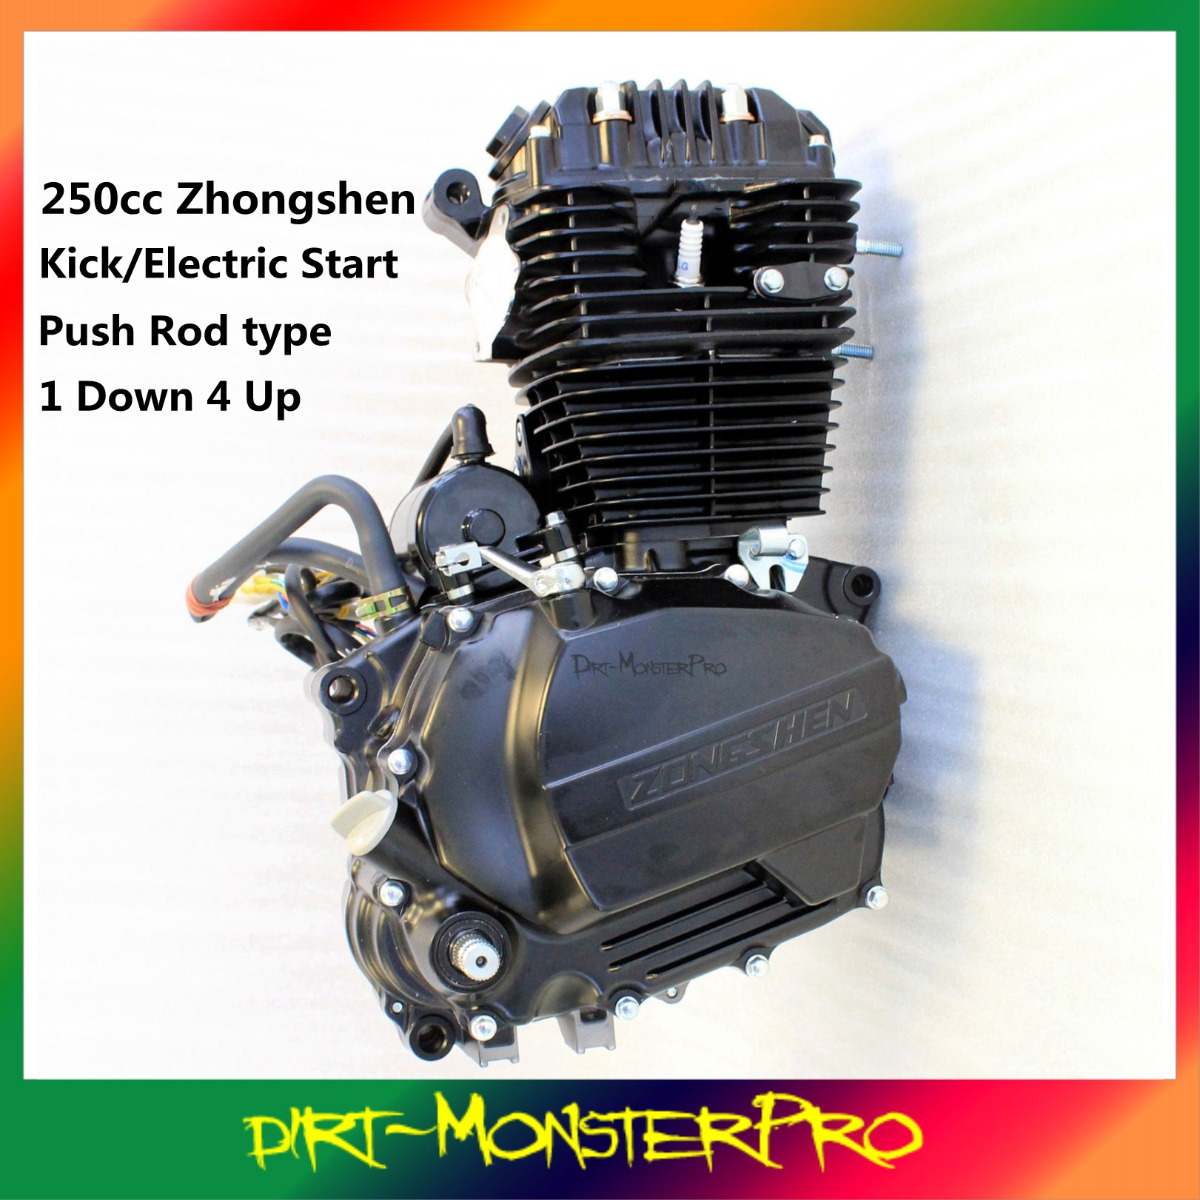 zhongshen 250 cc ohc engine carby wiring harness thumpster atomik zhongshen 250 cc ohc engine carby wiring harness thumpster atomik pit dirtbike